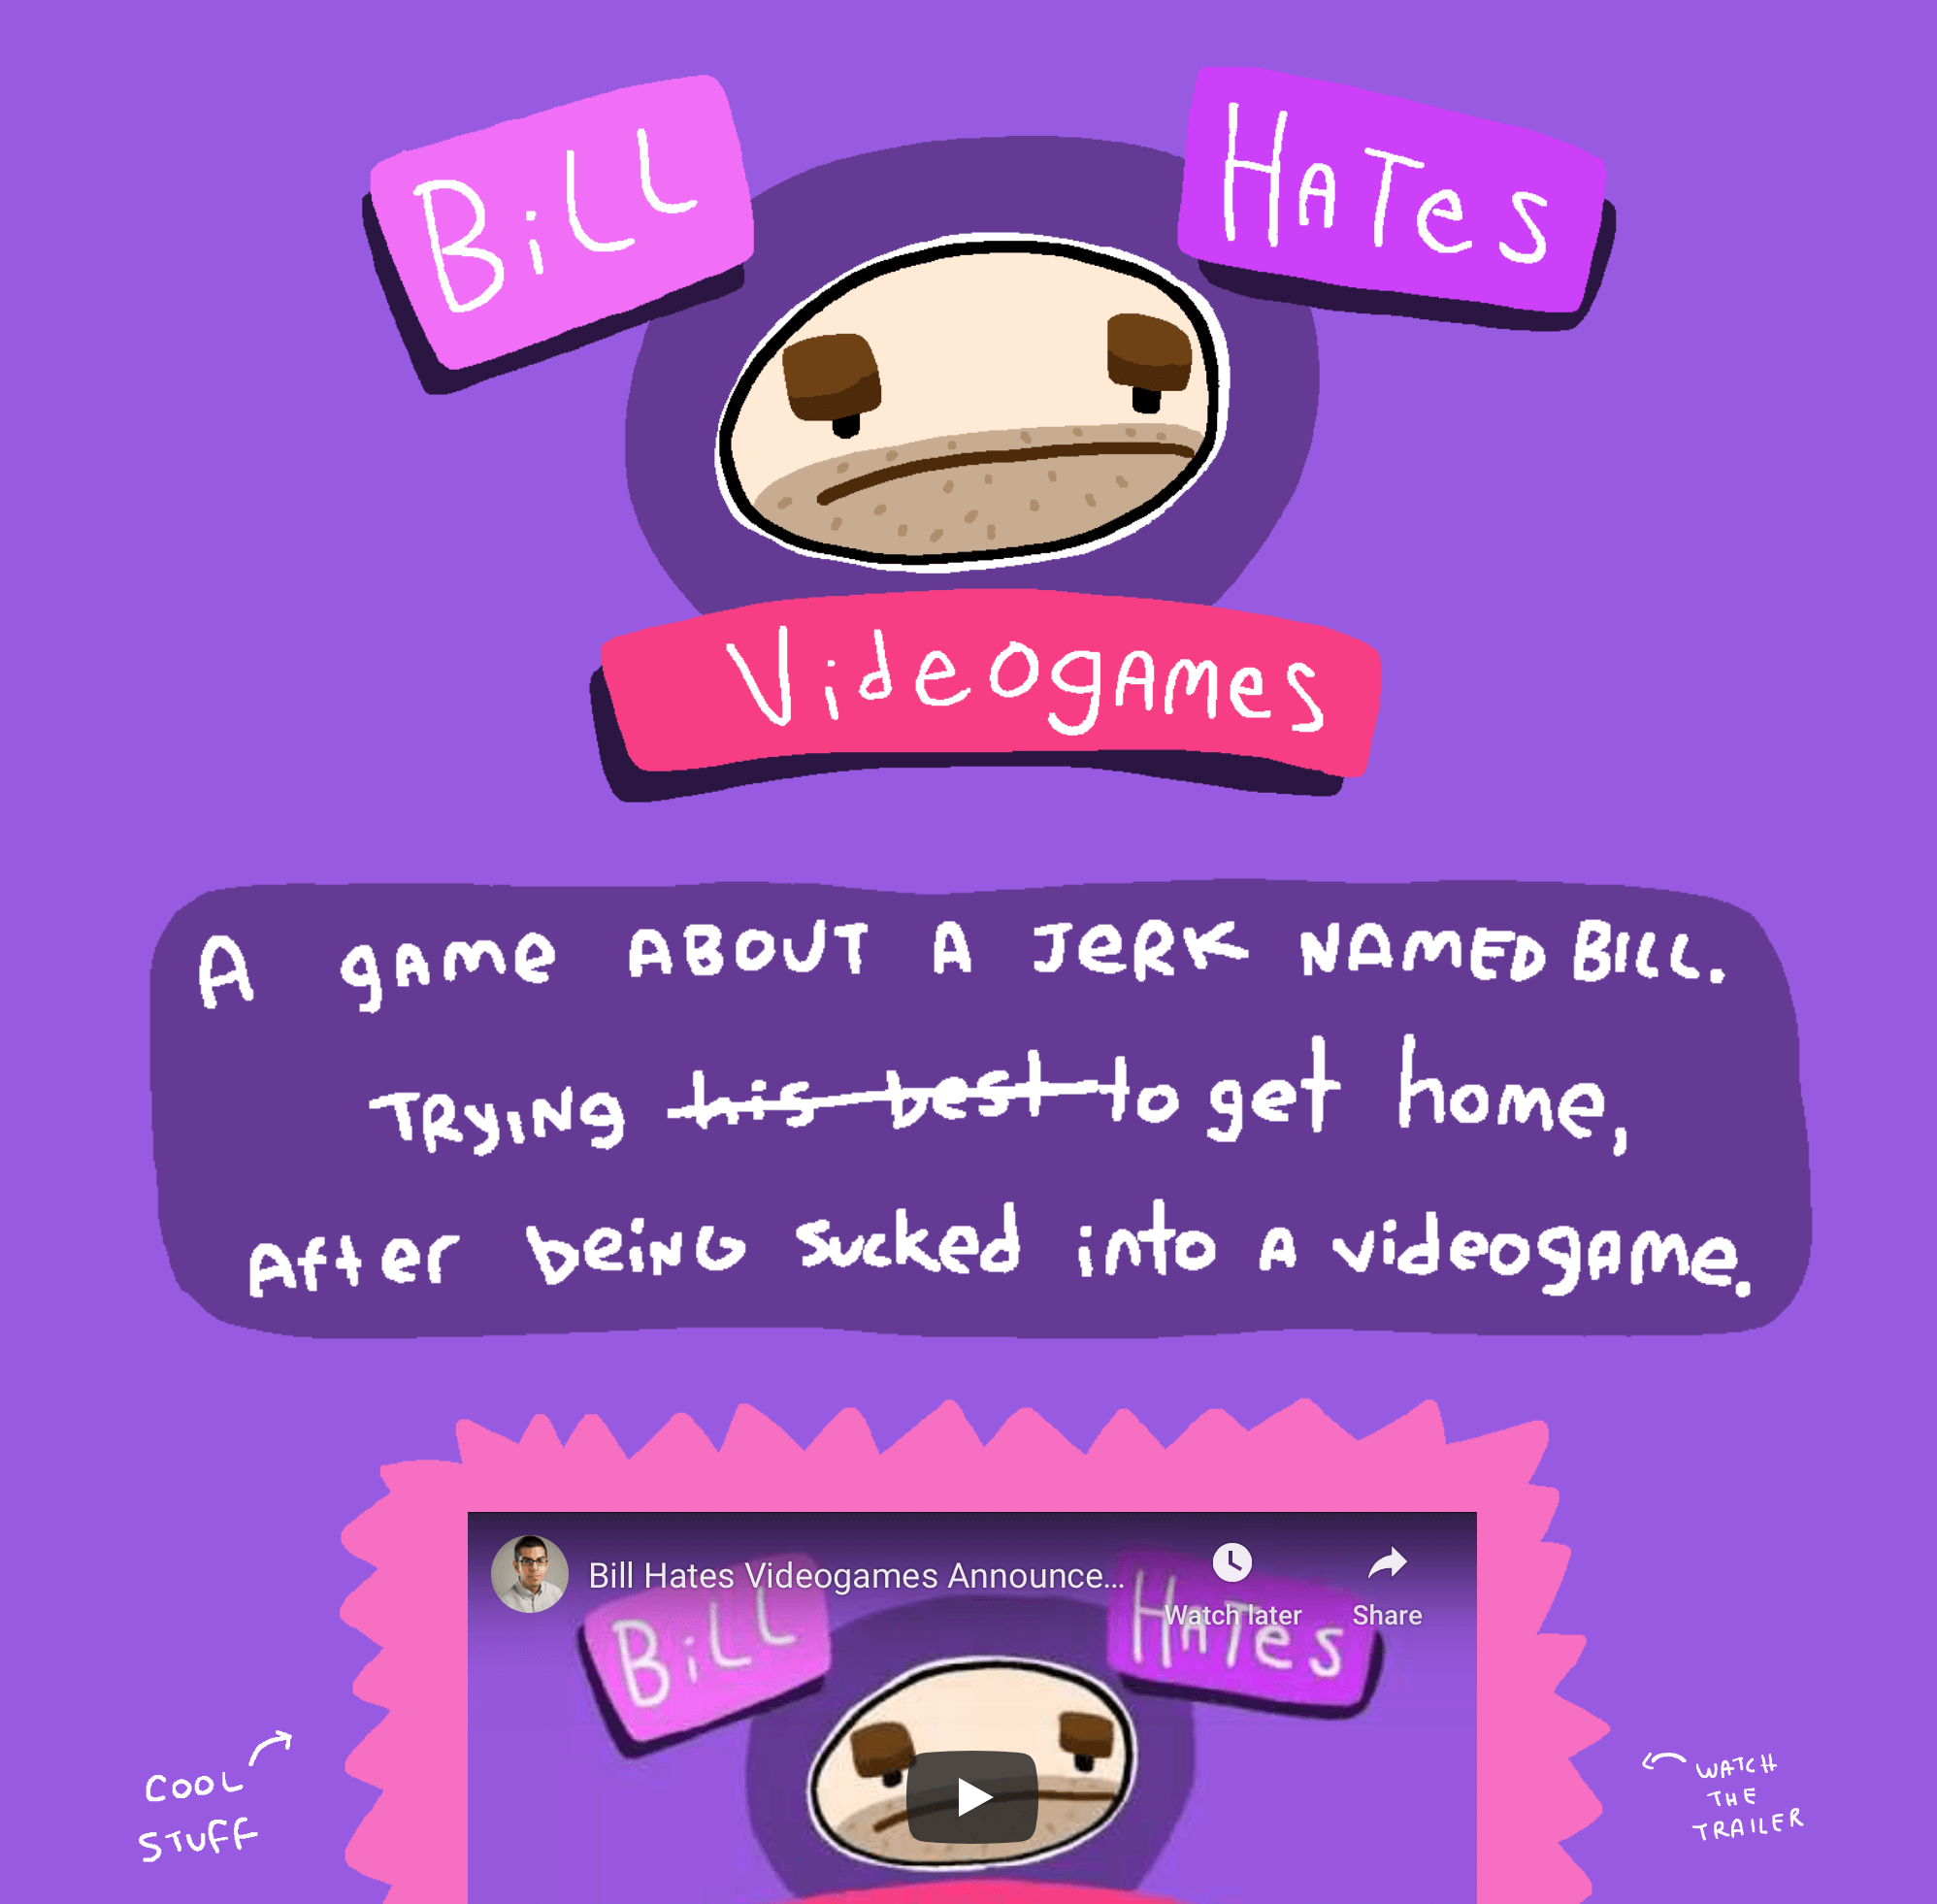 a screenshot of the Bill Hates Videogames website